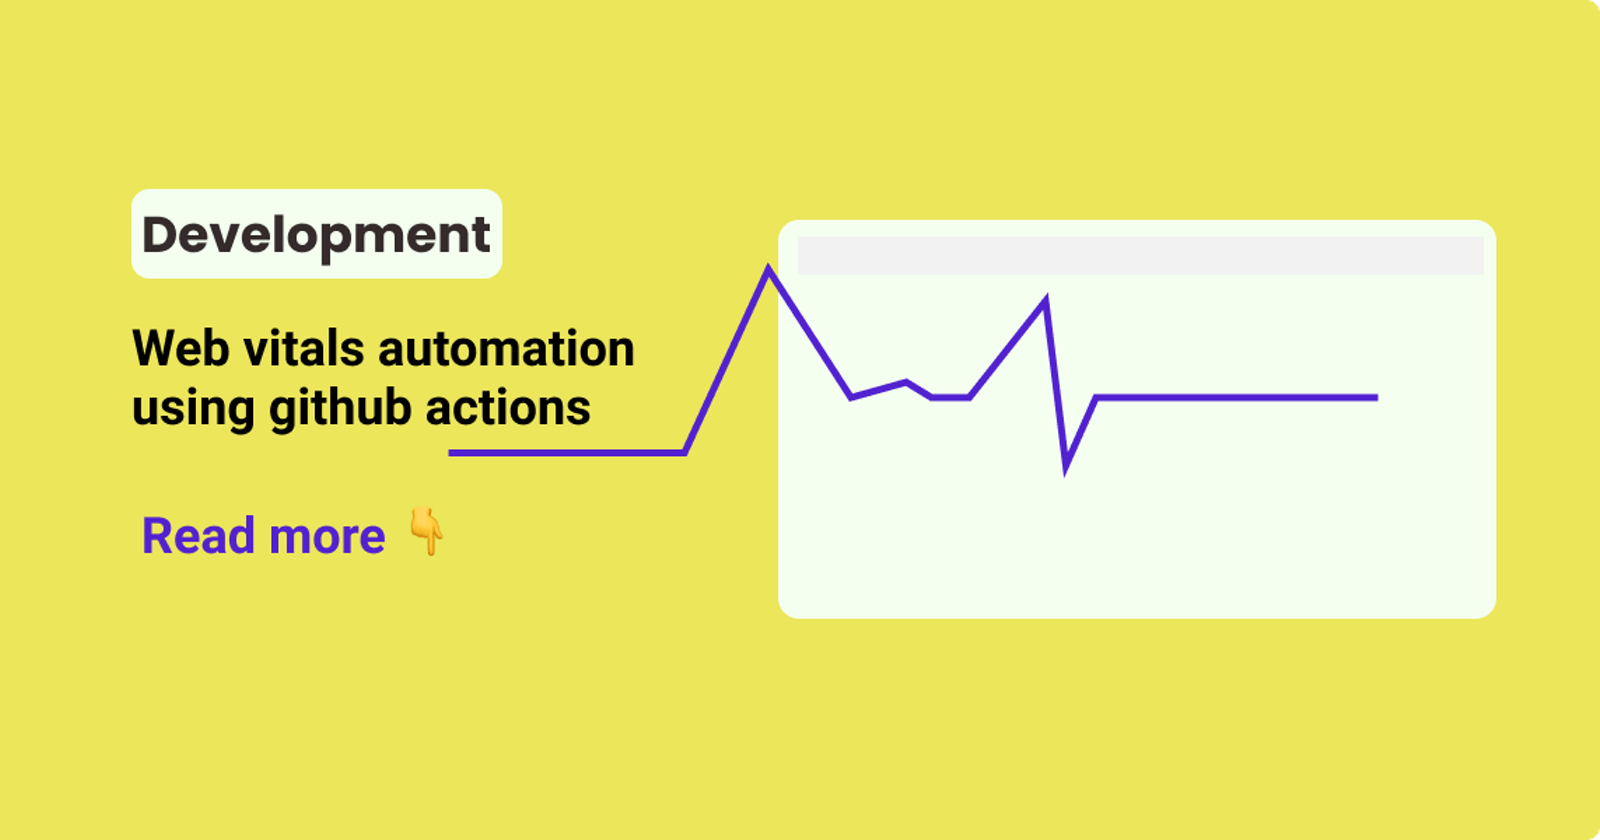 Web vitals automation using github actions